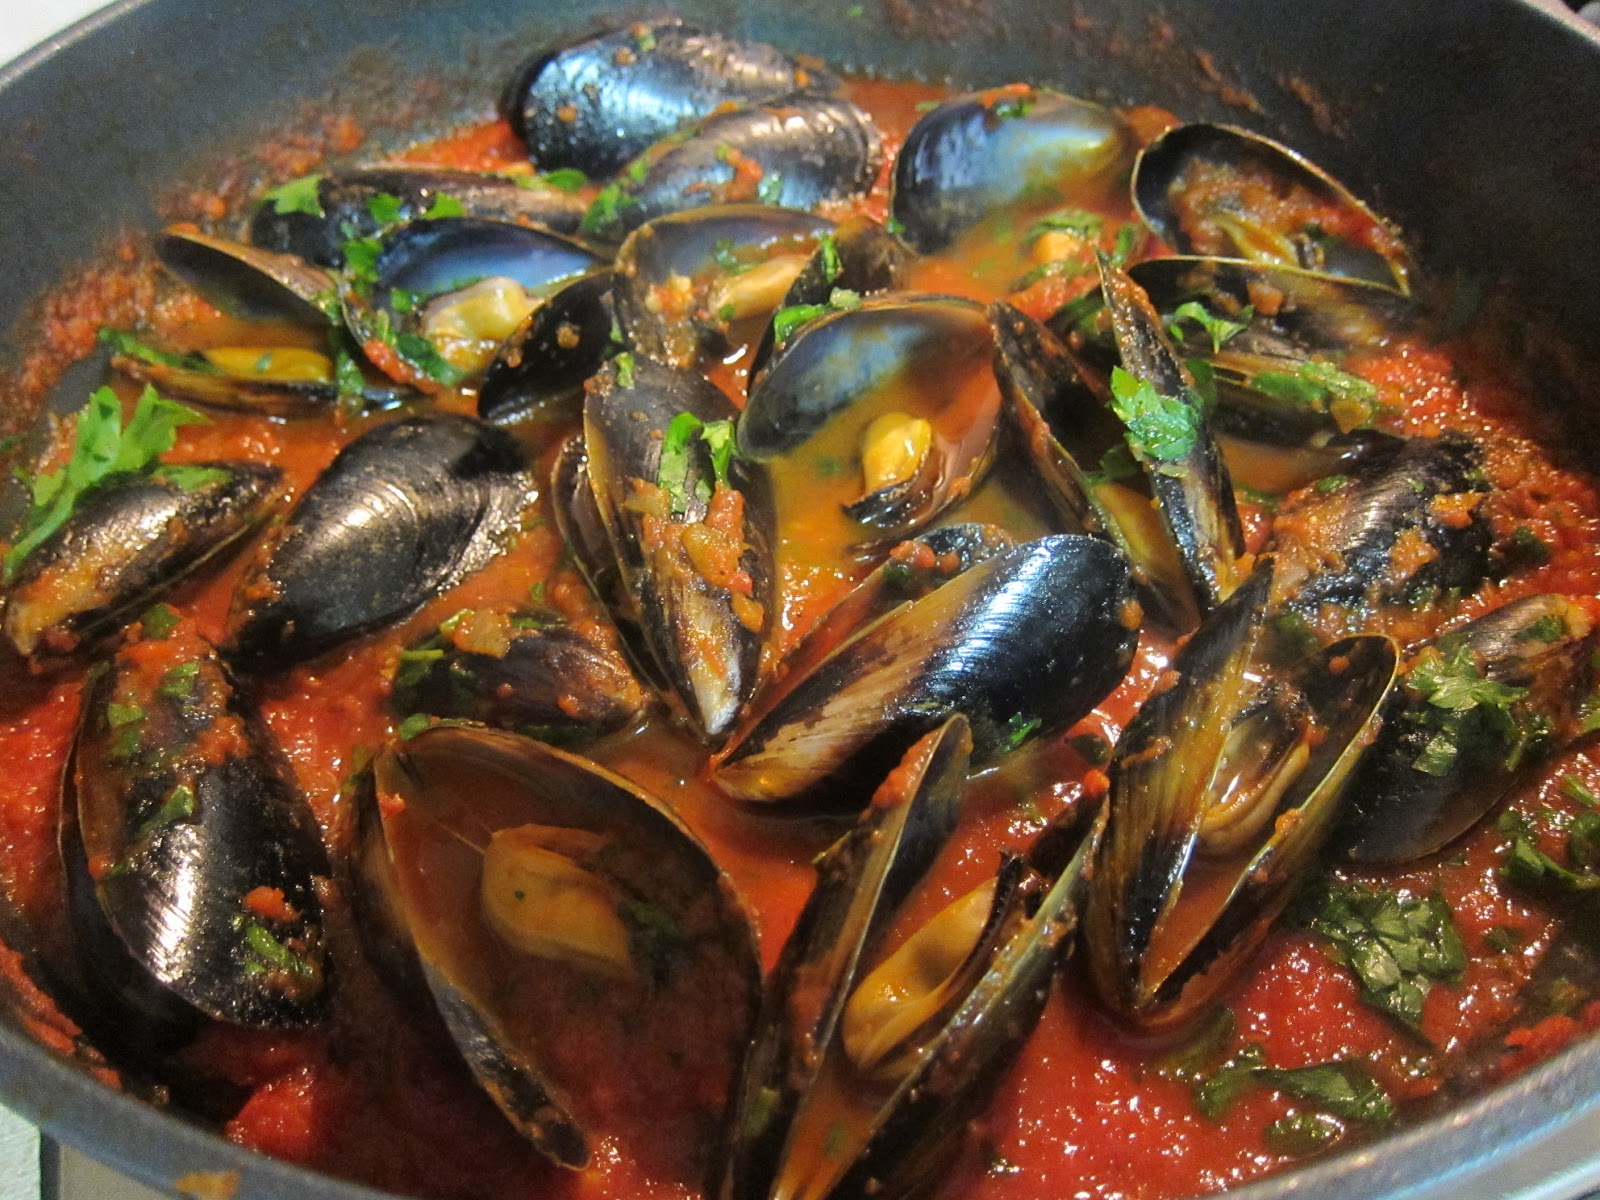 Saucy Thyme: Braised Mussels with Tomato, Chilli and Basil